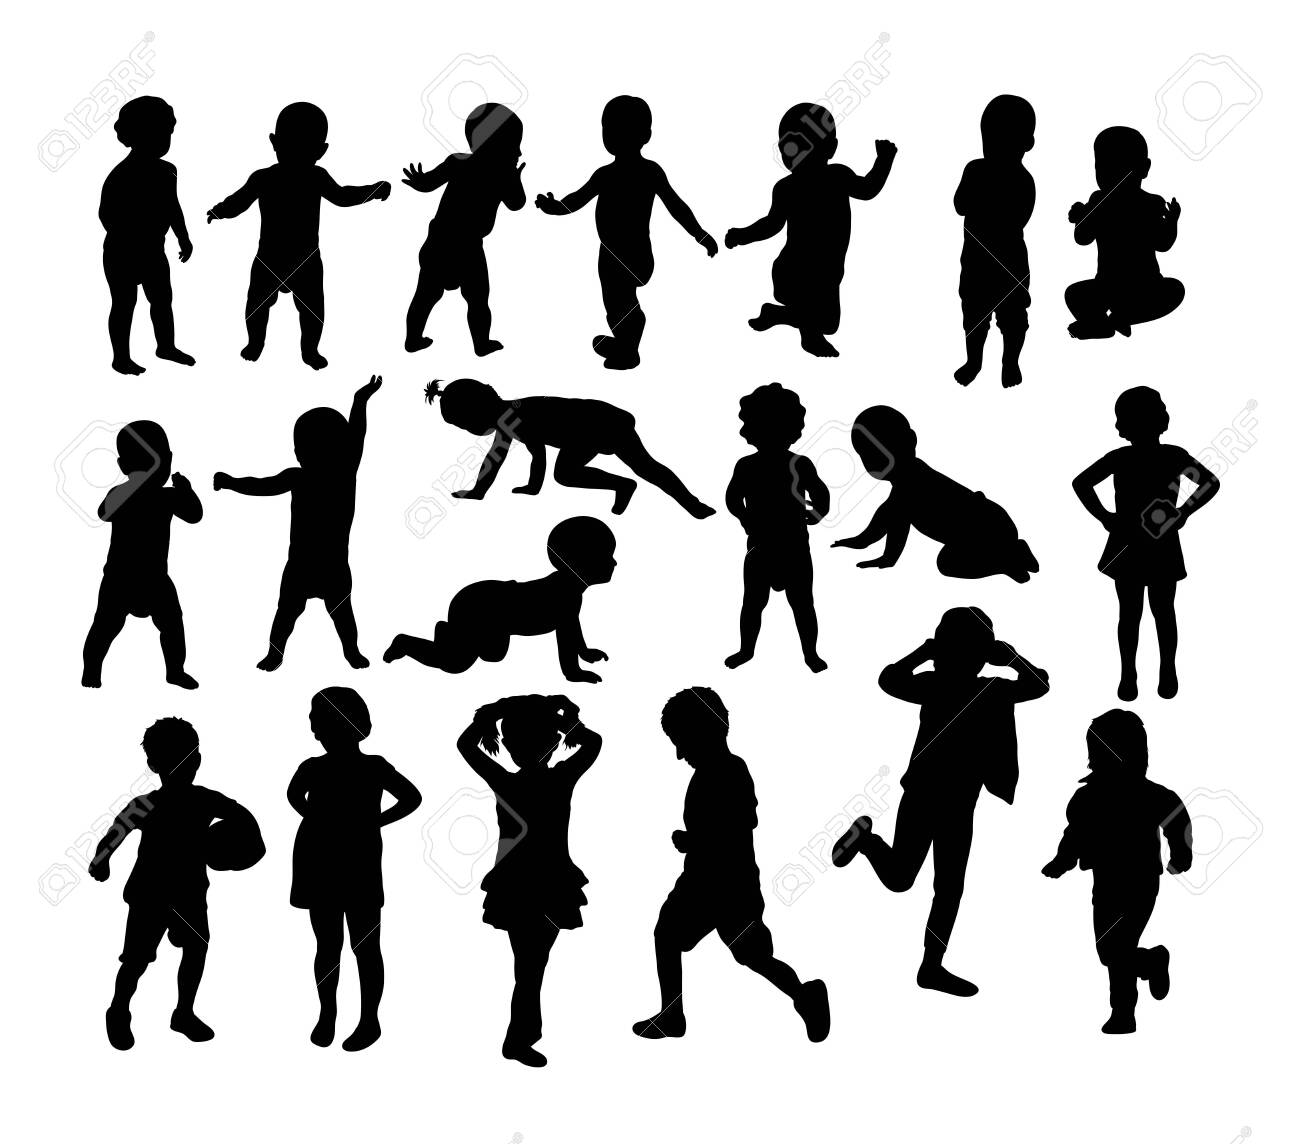 Baby and children Silhouettes, art vector design - 131445517